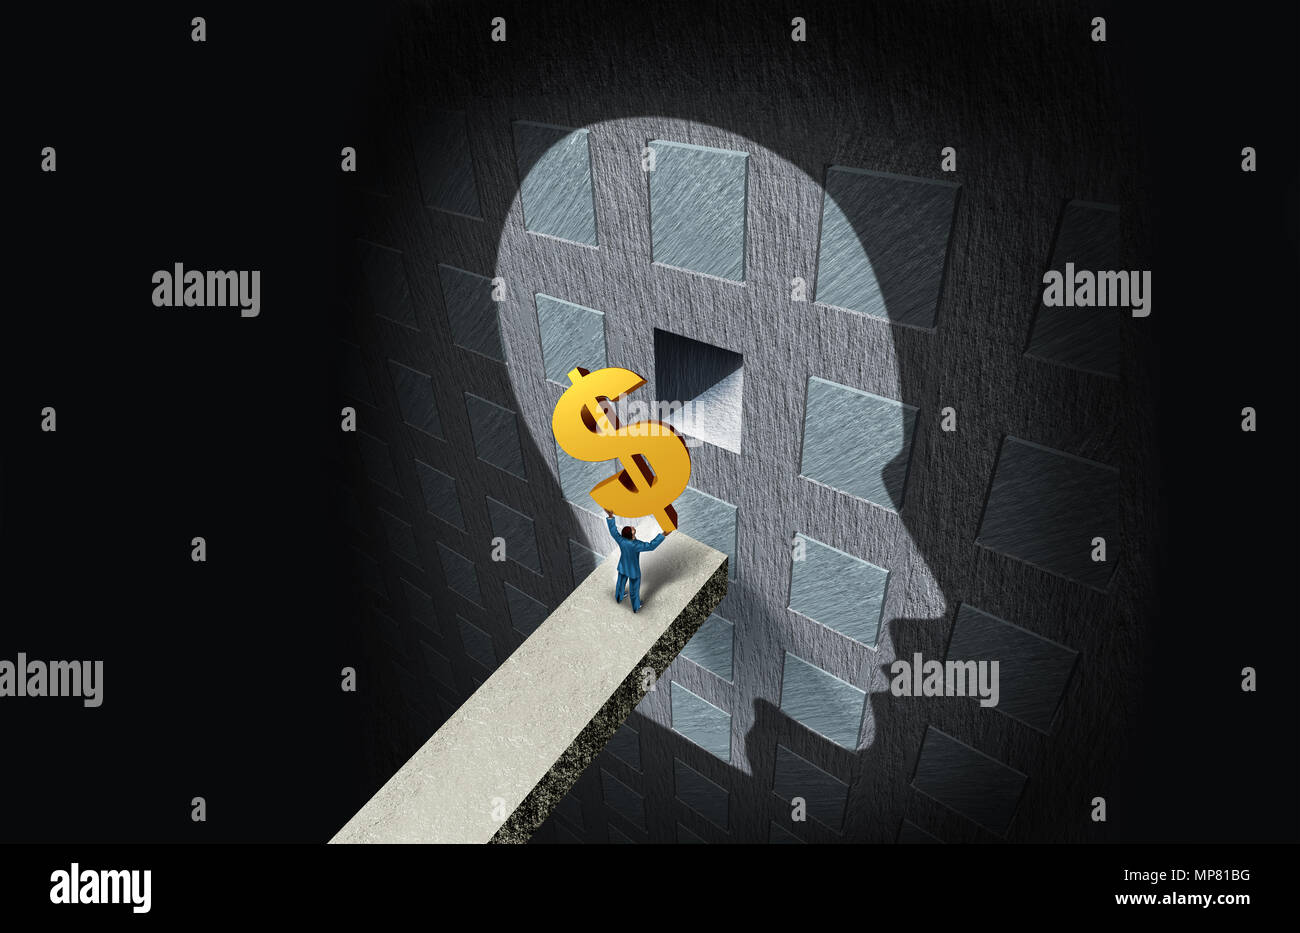 Business psychology concept and wealth thinking or financial education  and psychiatry or psychologist fees symbol with 3D illustration elements. - Stock Image